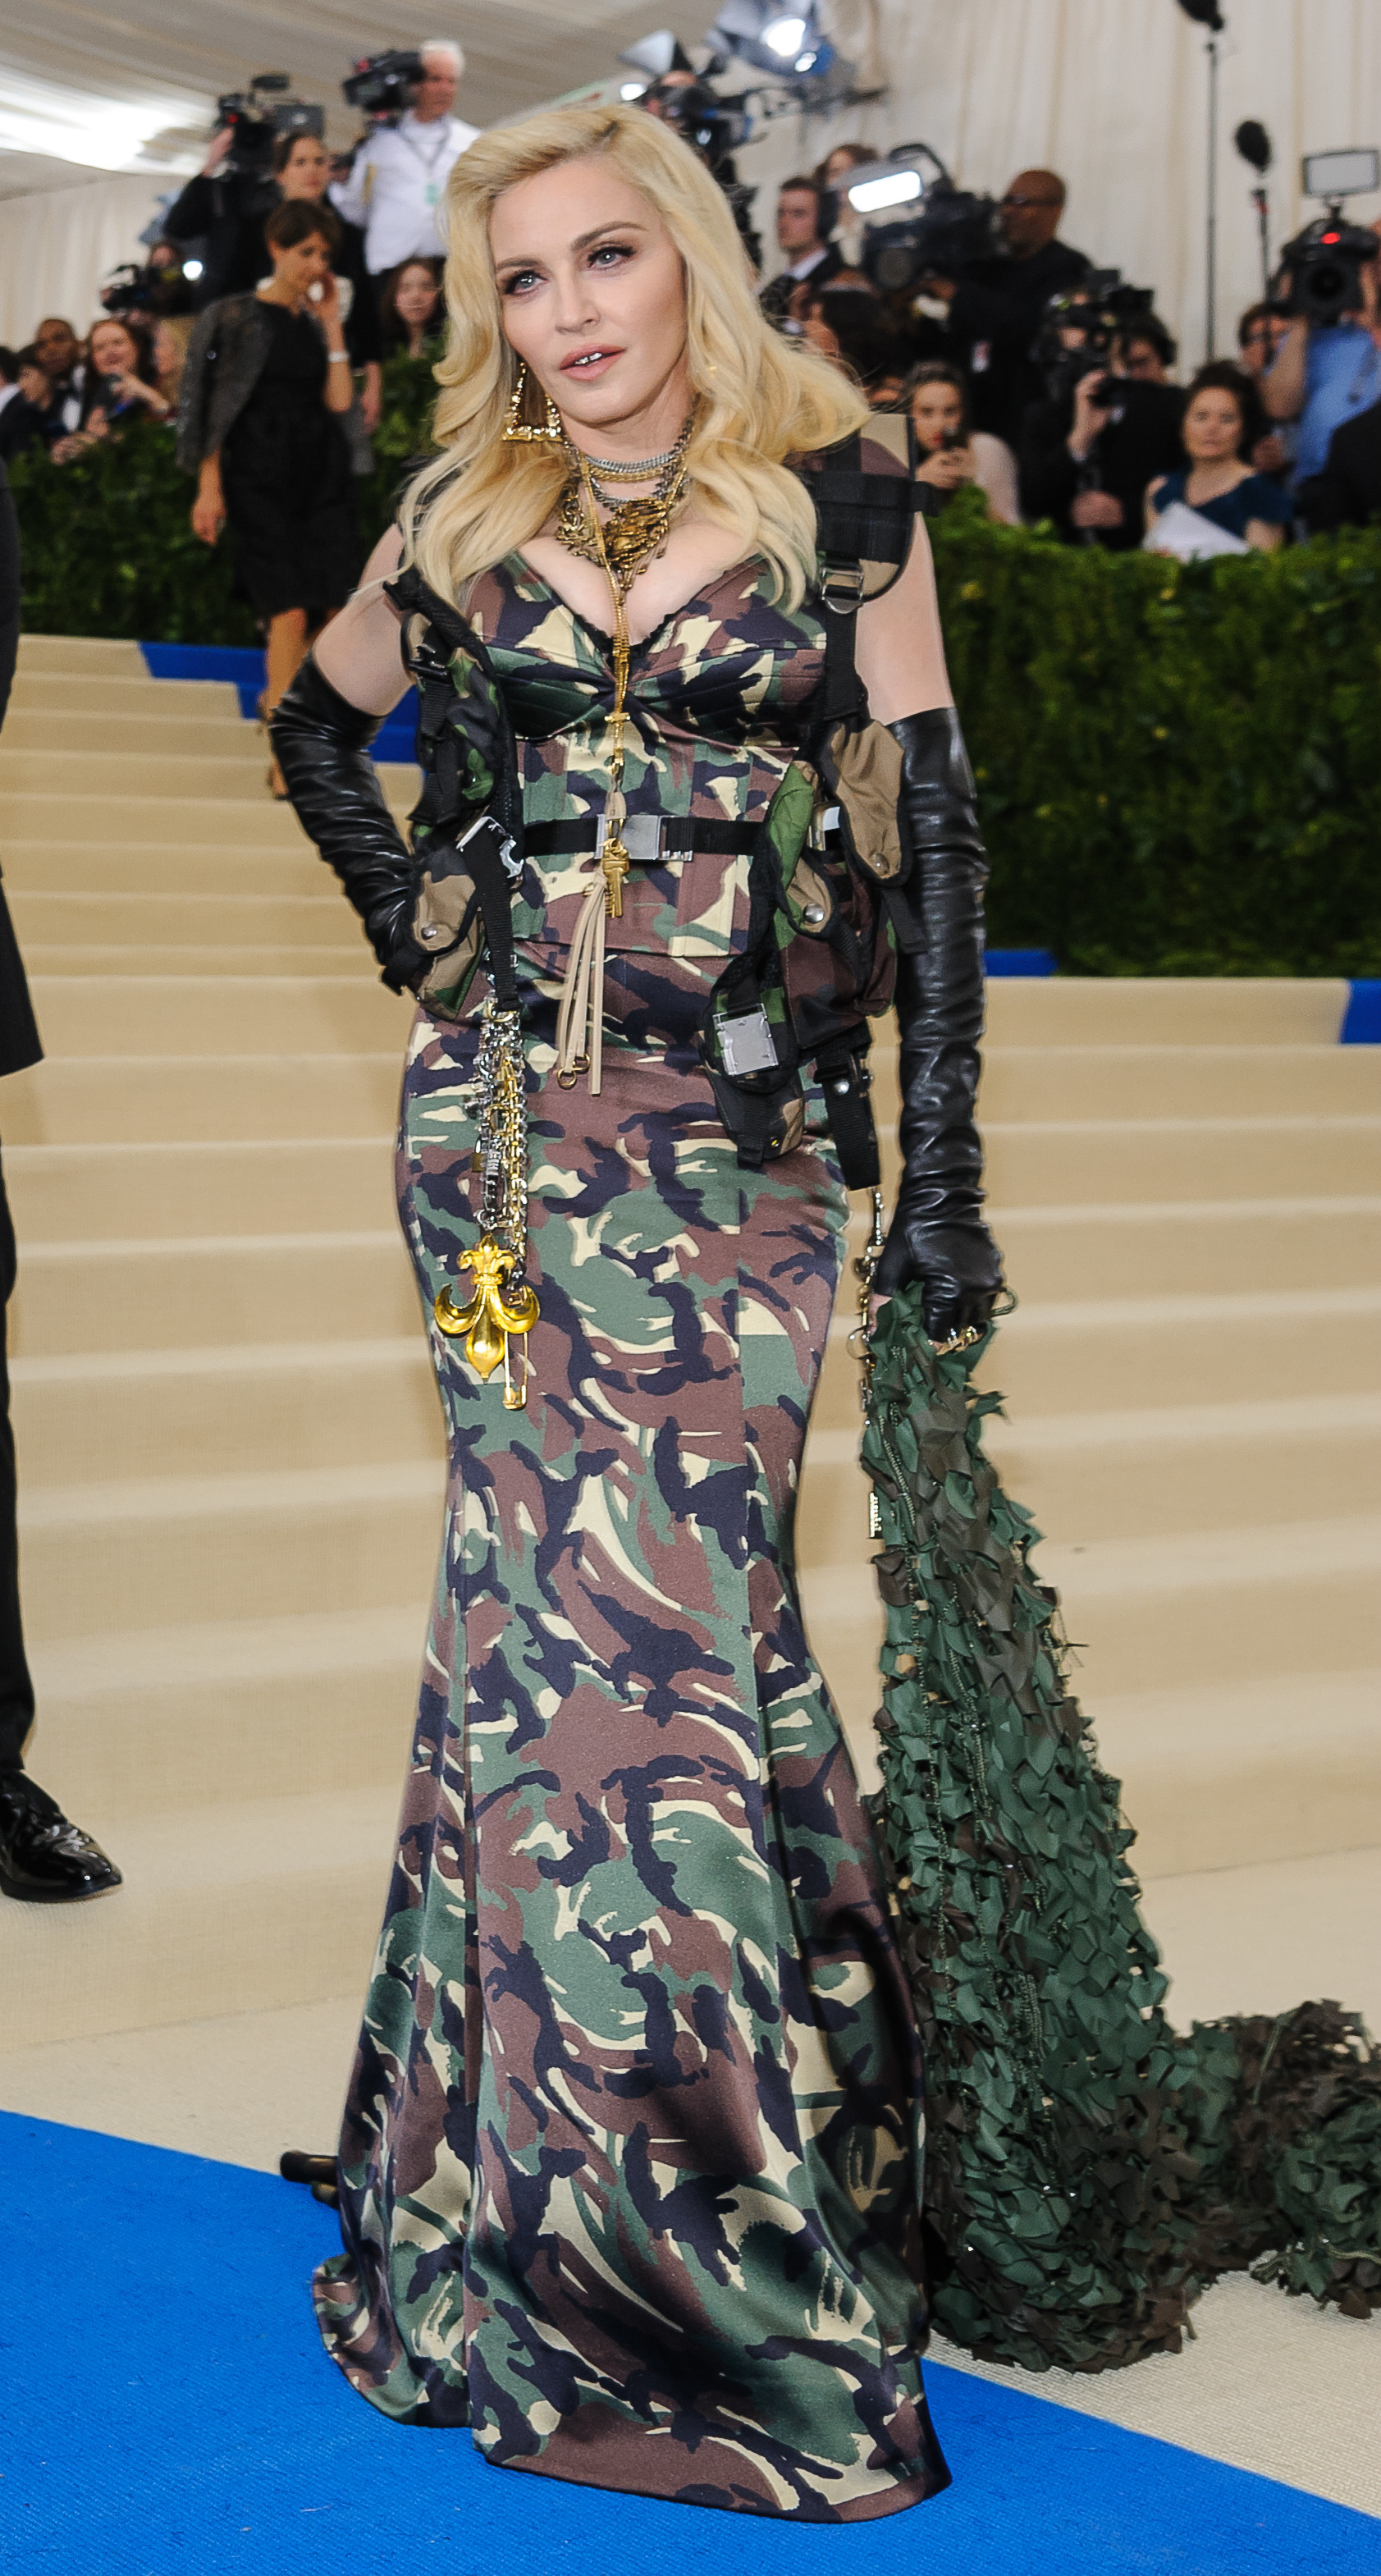 The Met Gala 2017 - Arrivals  Featuring: Madonna Where: New York, New York, United States When: 01 May 2017 Credit: WENN.com